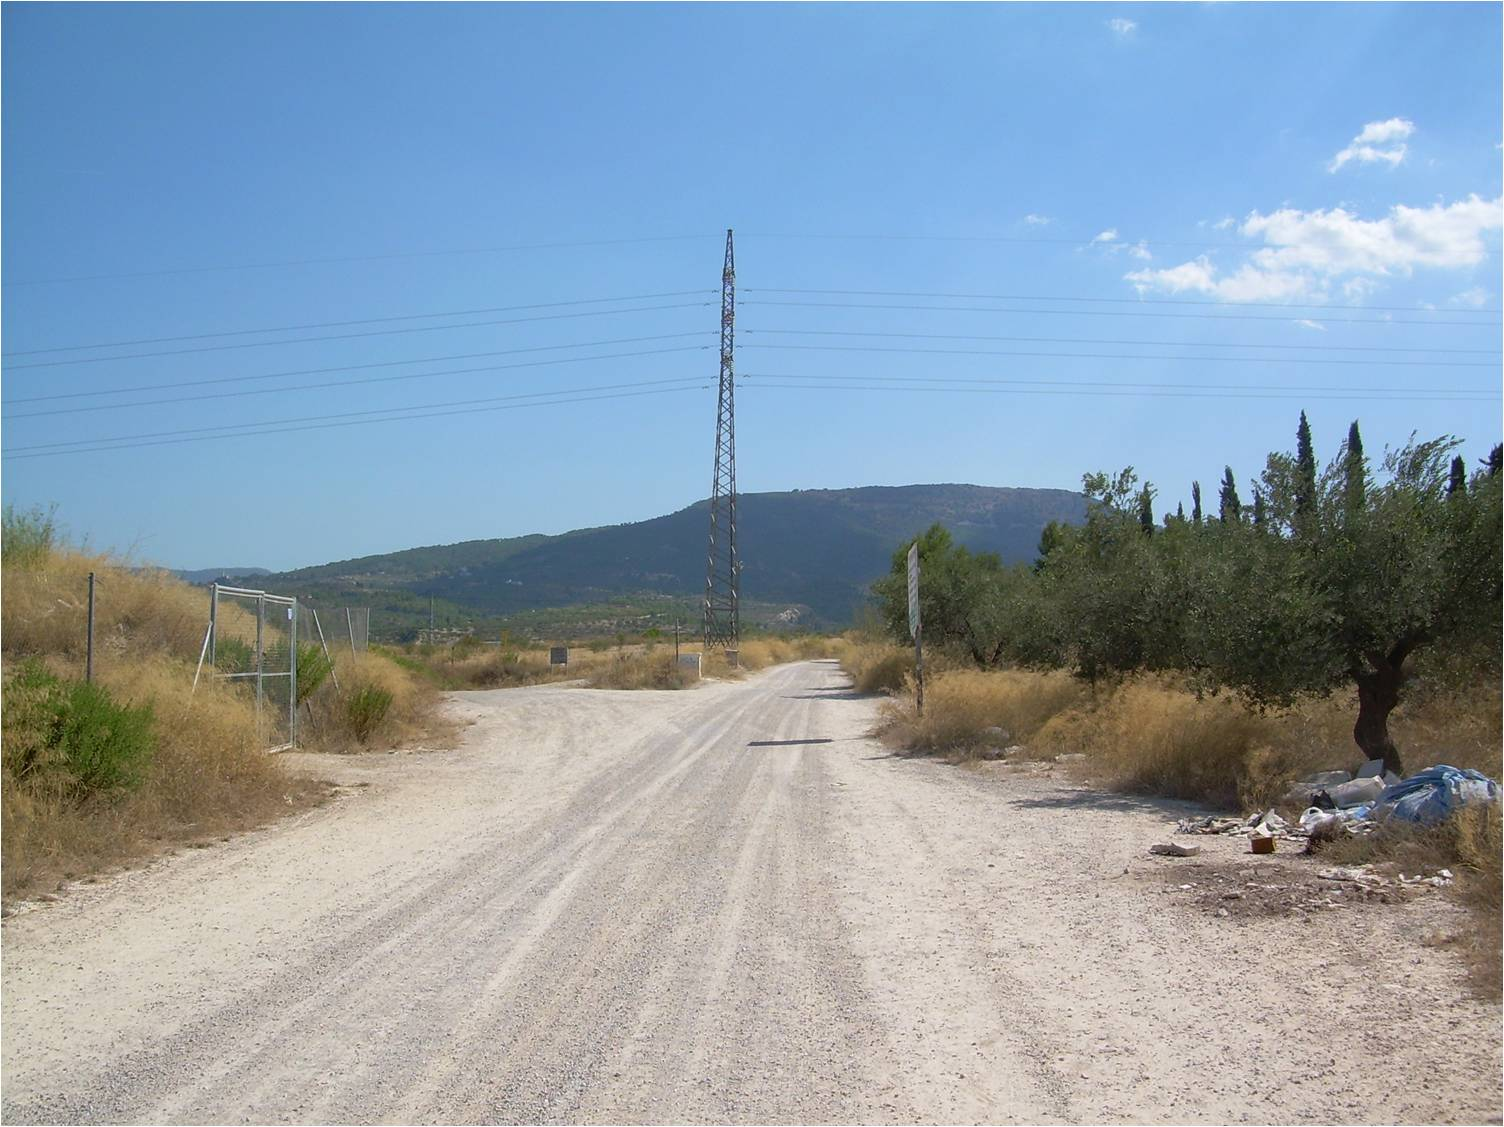 Route of Alcoy-Gandia railway in Cocentaina, Spain